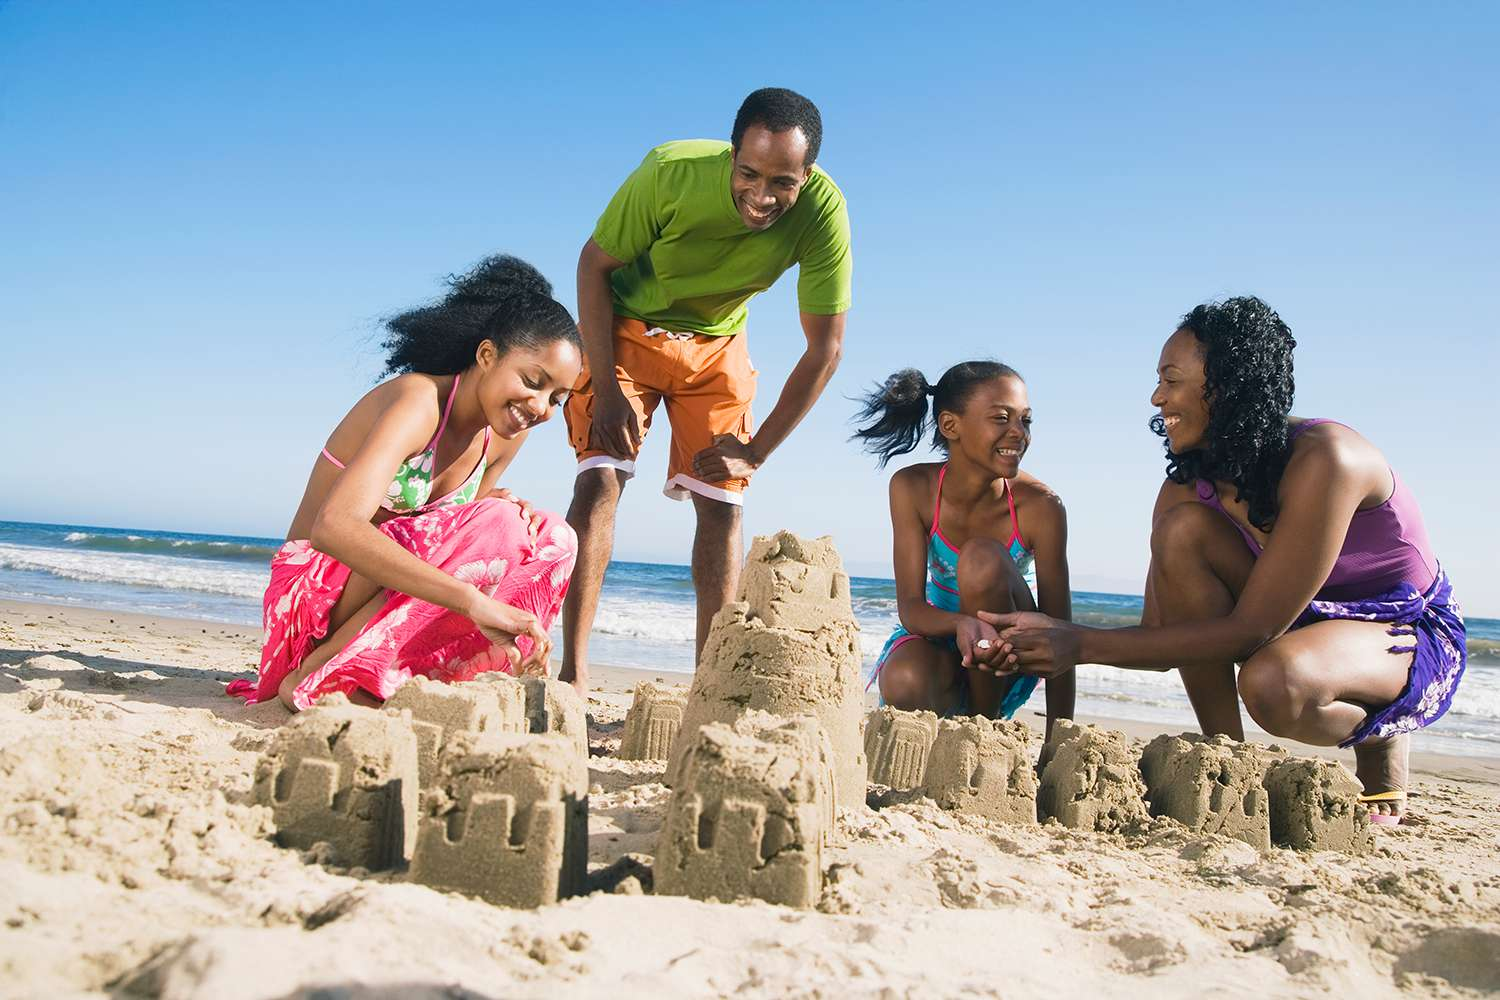 Best-Beaches-Kids-New-South-Wales 4